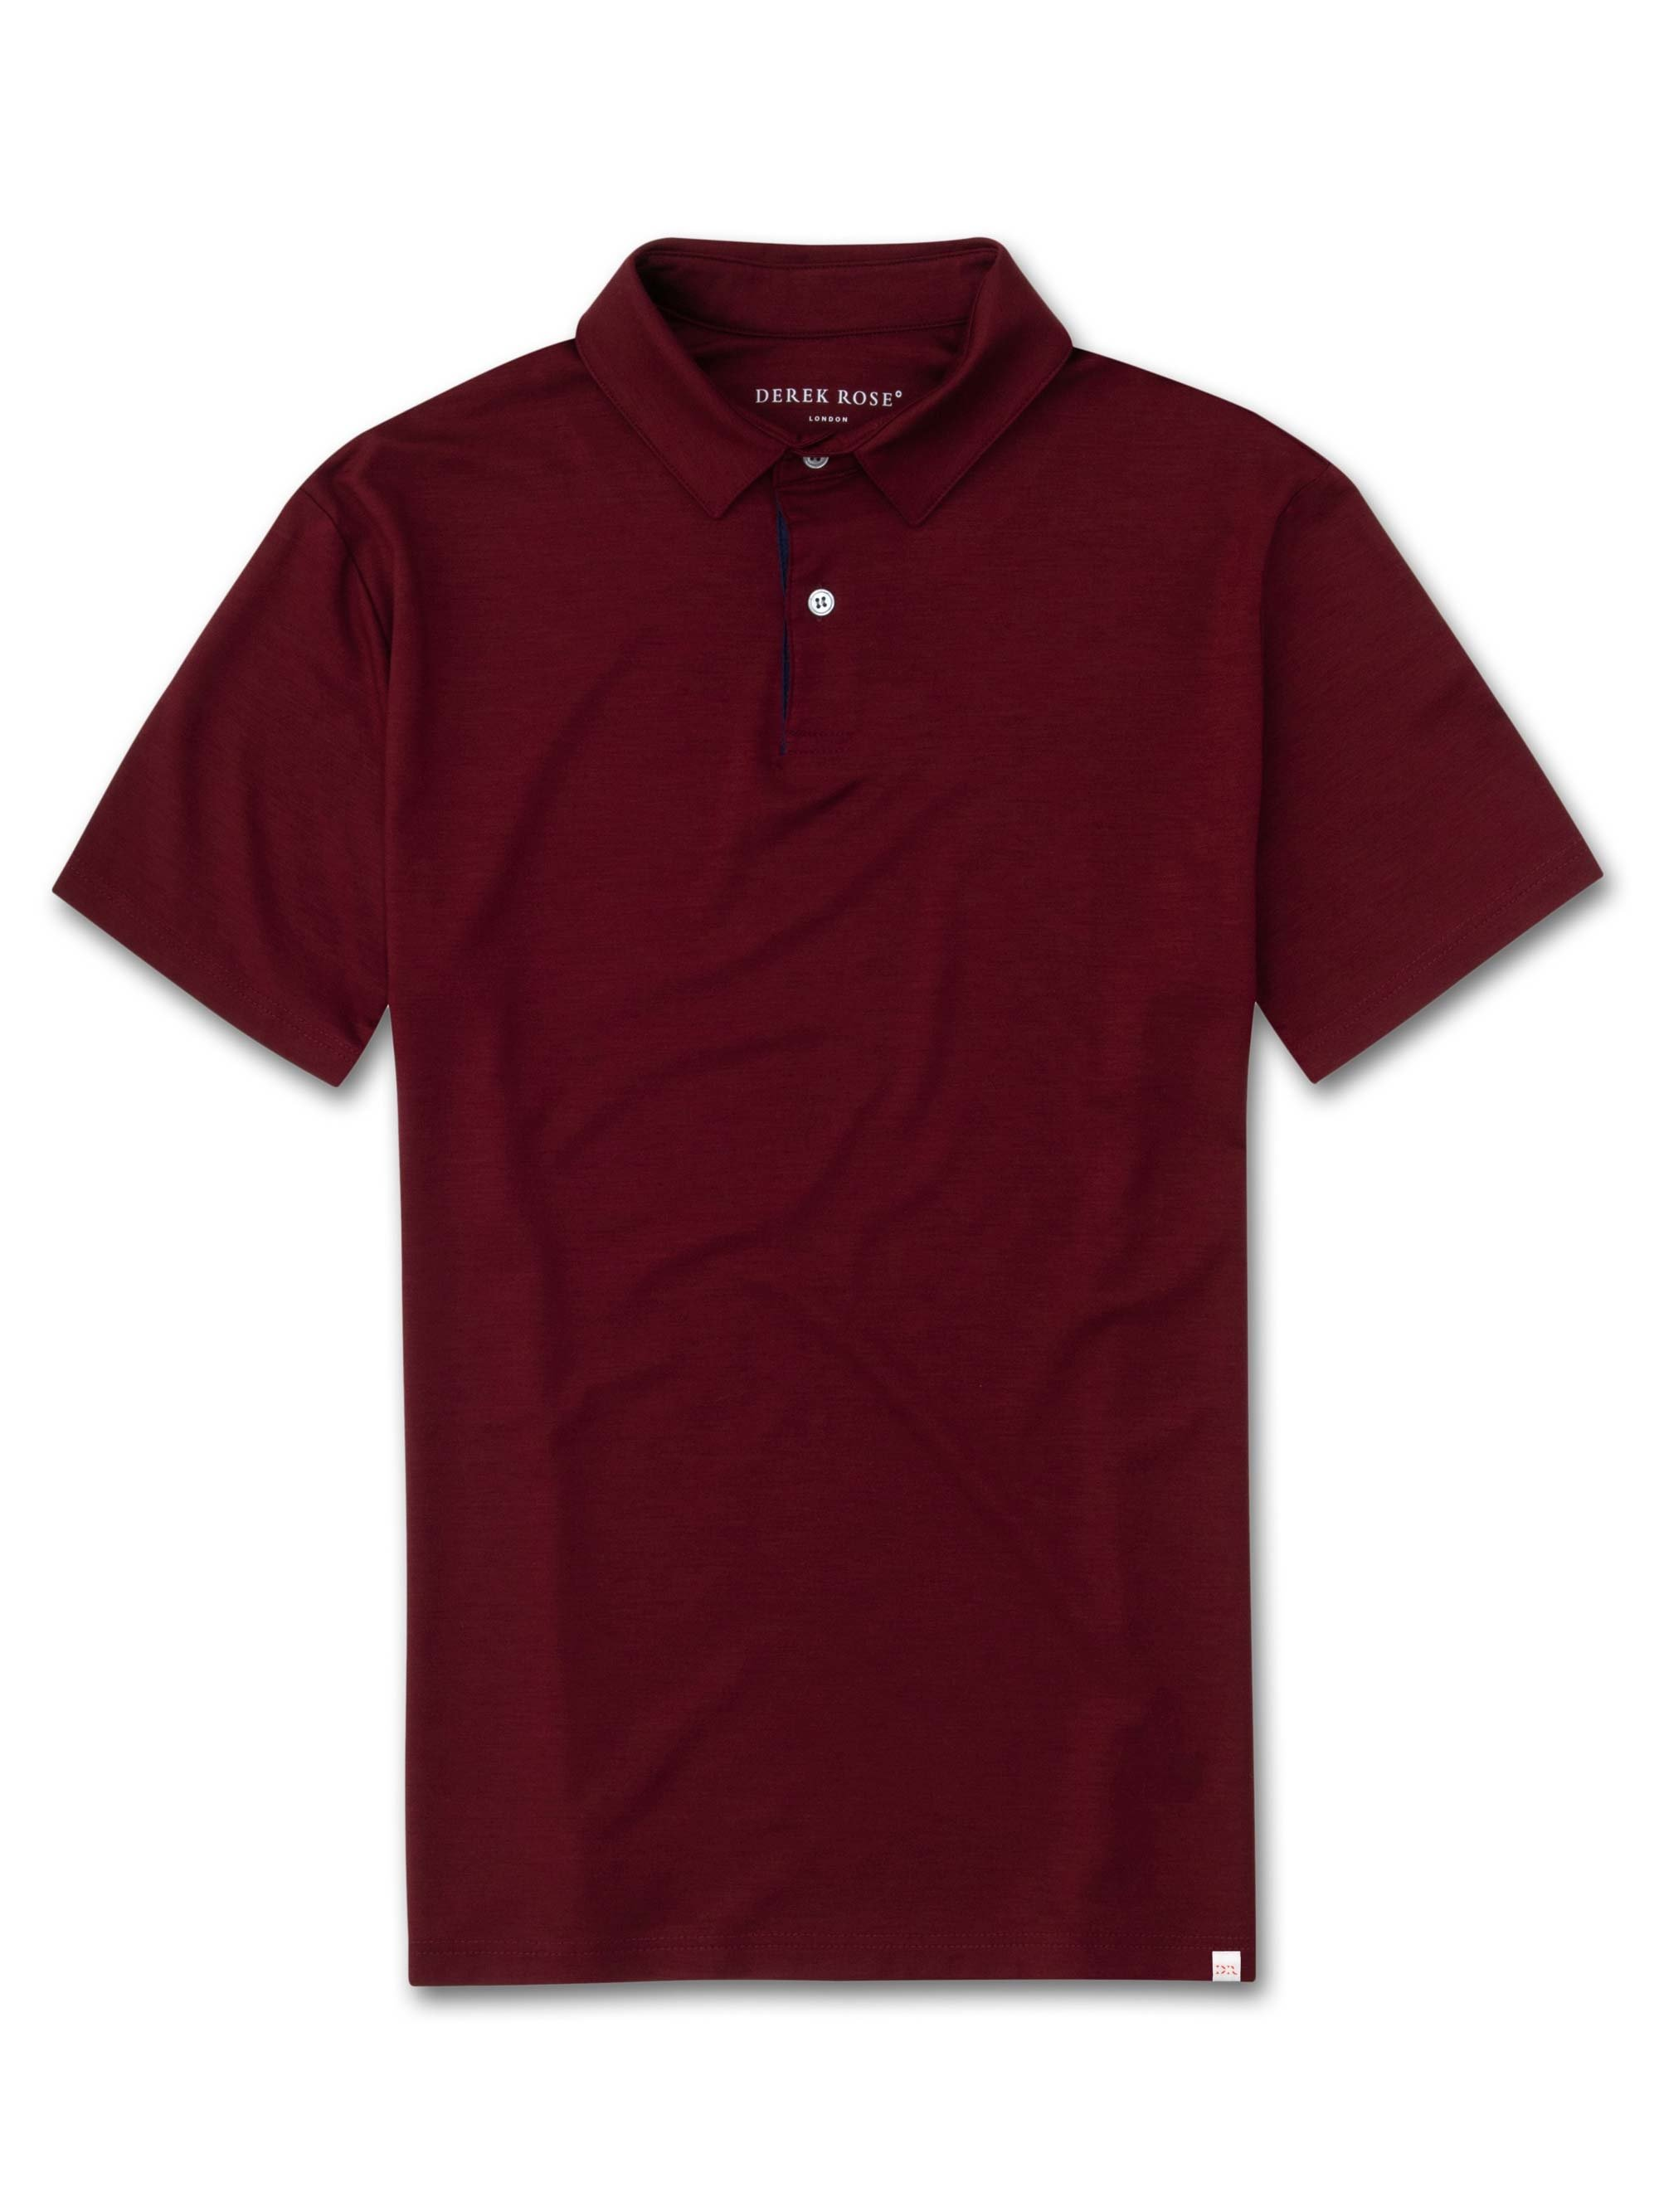 Men's Short Sleeve Polo Shirt Basel 7 Micro Modal Stretch Burgundy